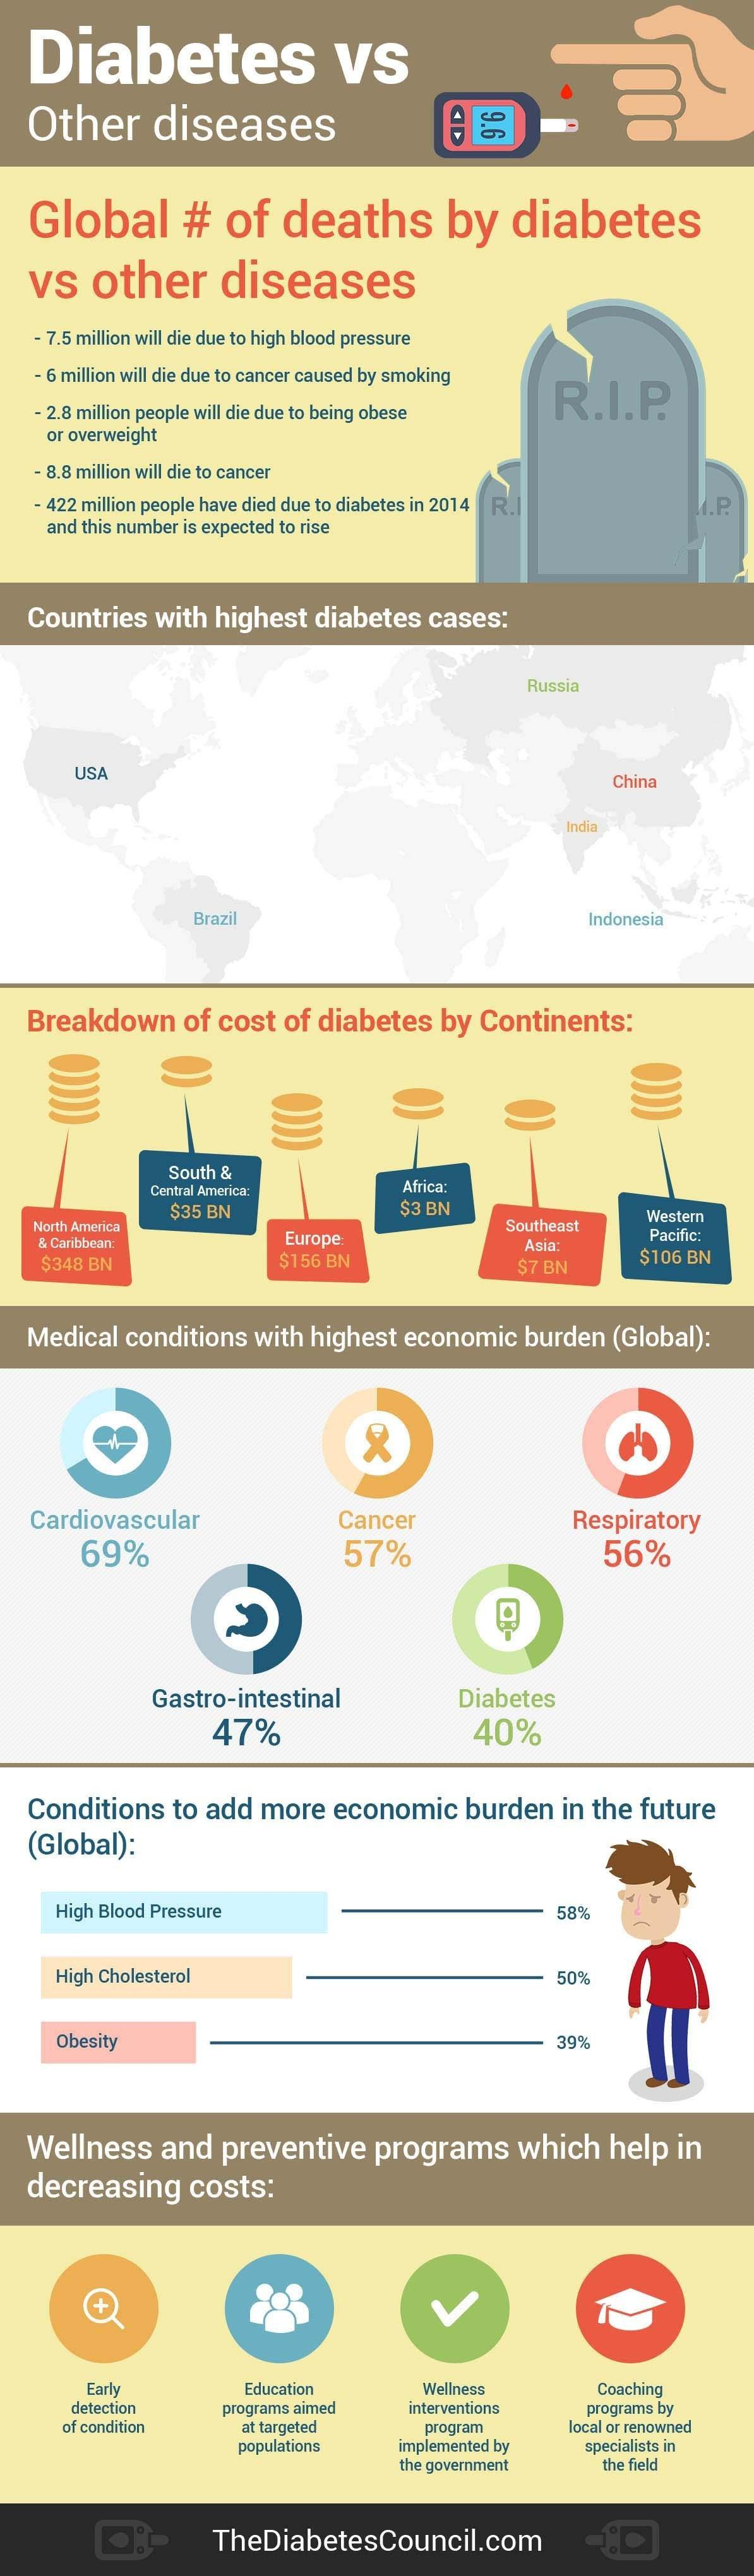 How Much Does Diabetes Cost The United States?